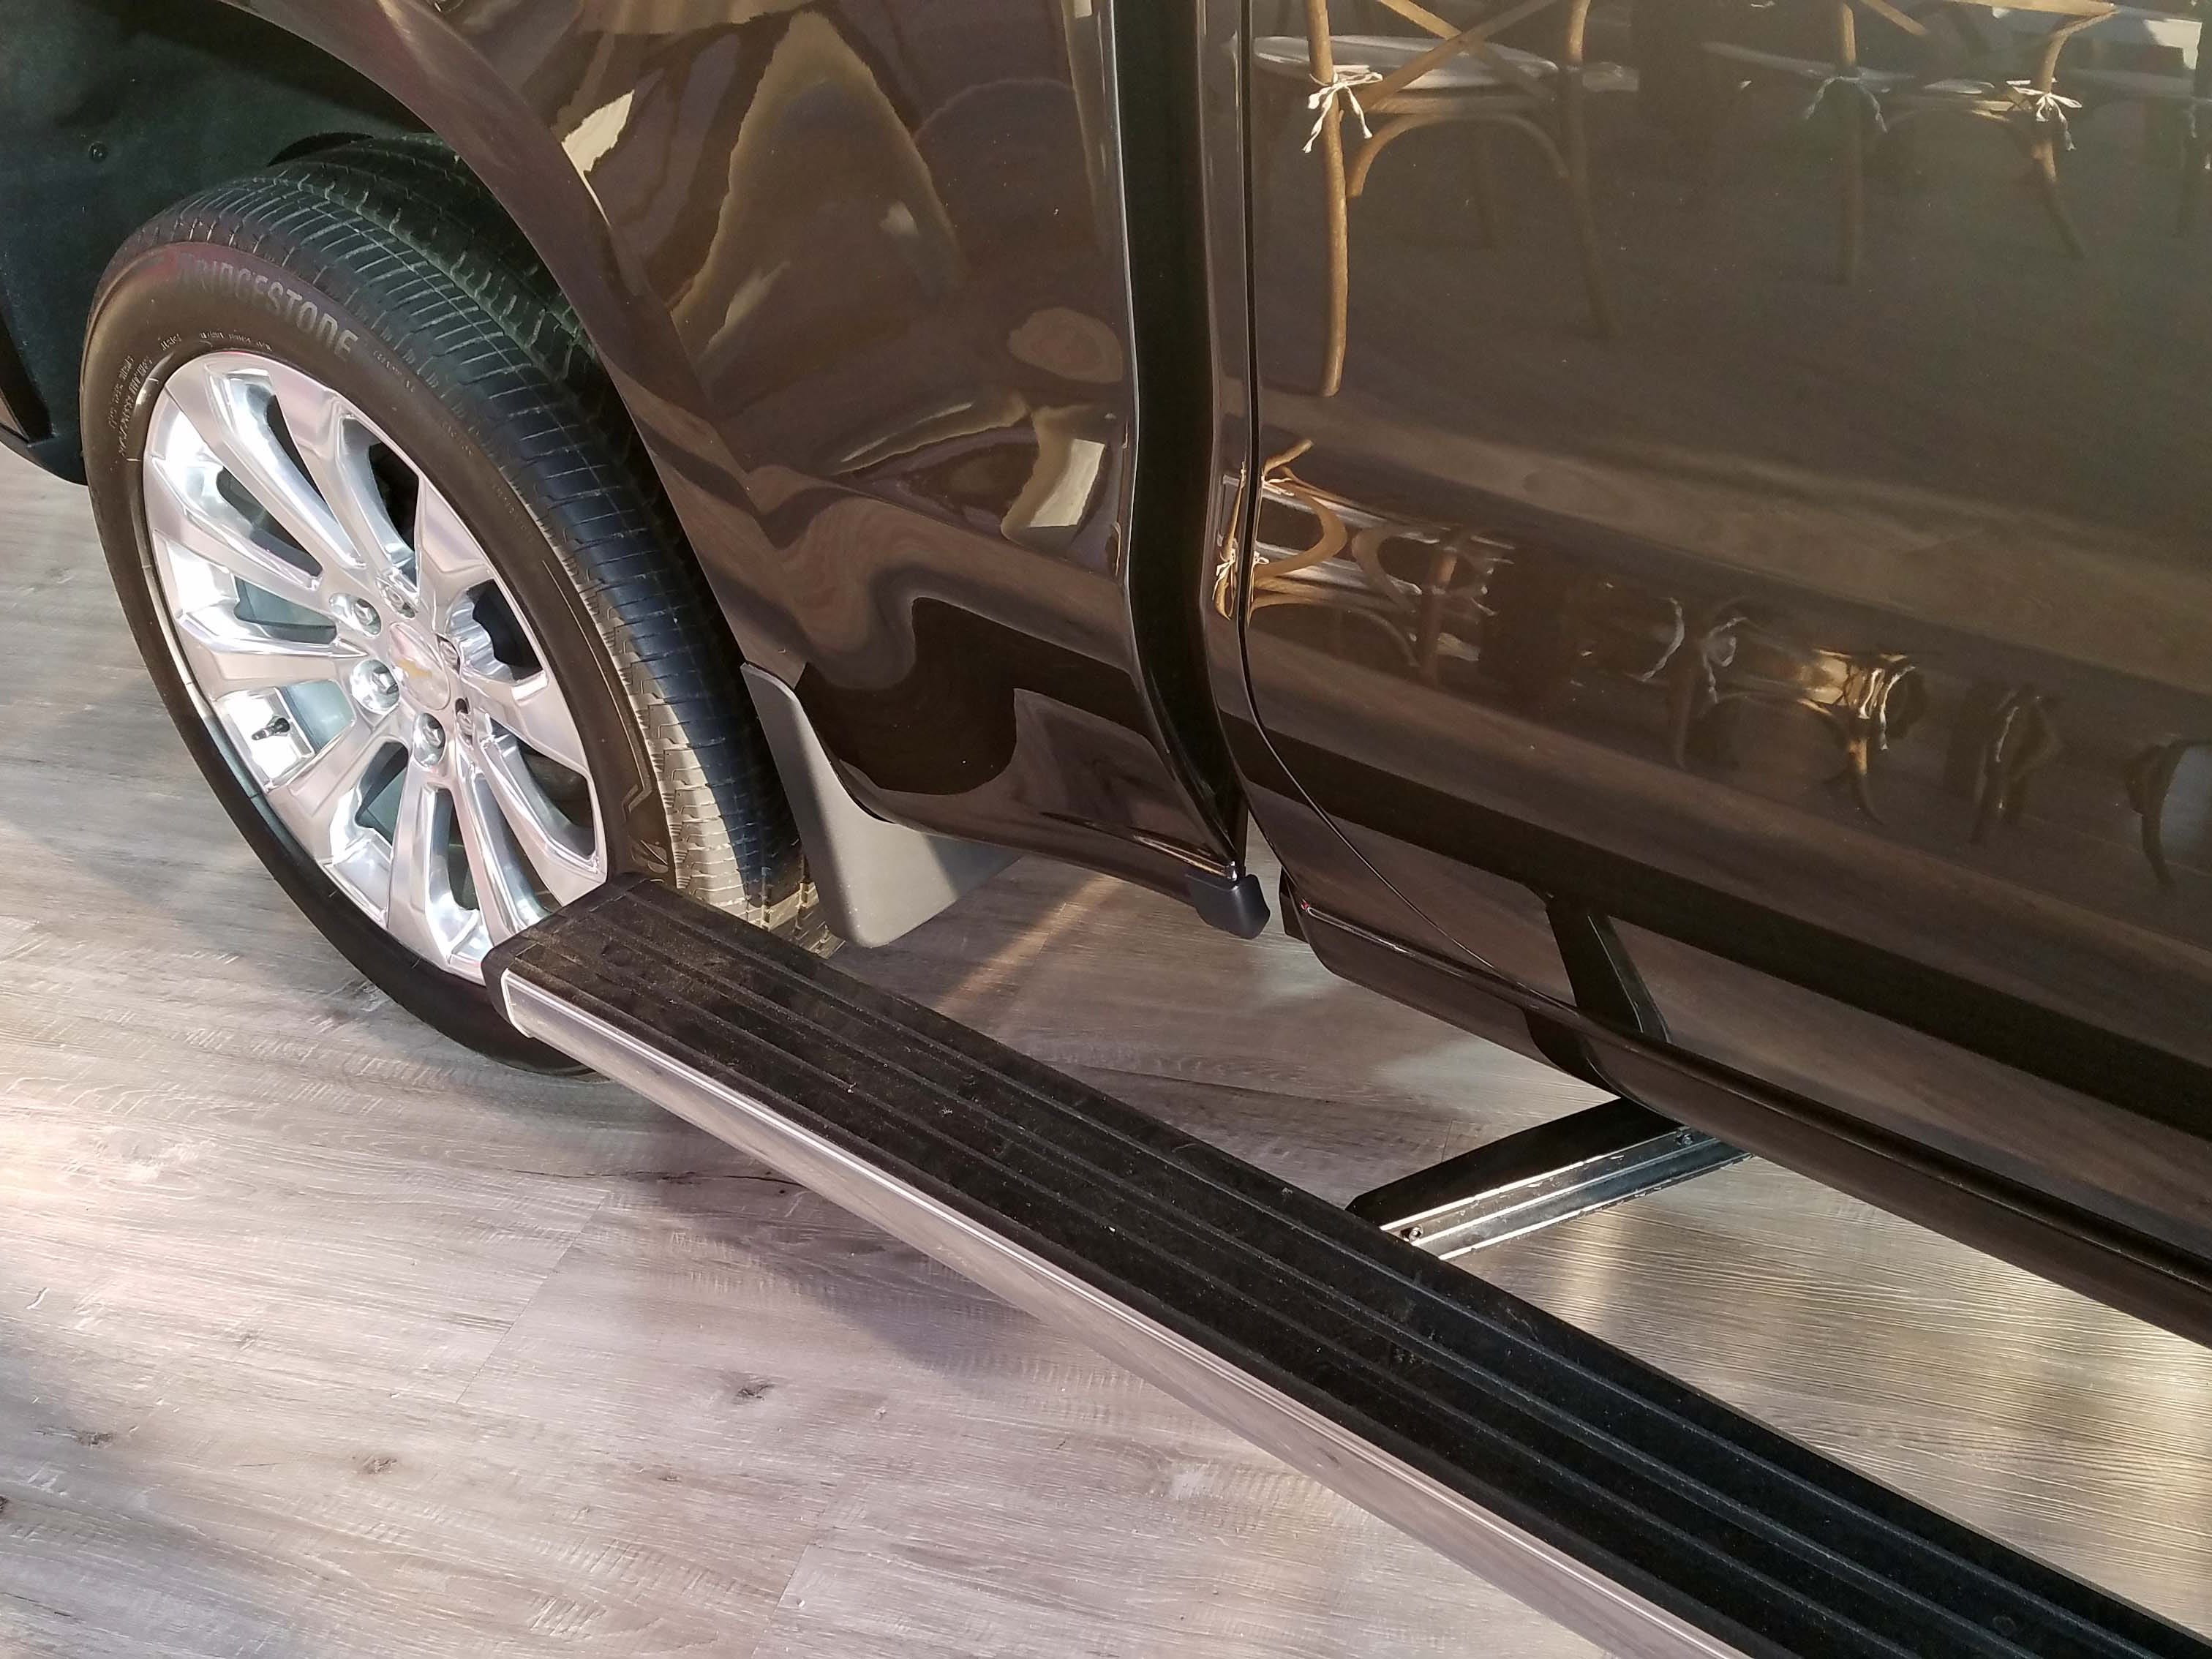 The upper trim, High Country model of the 2019 Chevy Silverado gets a swiveling lower step to aid access to the front of the pickup box.